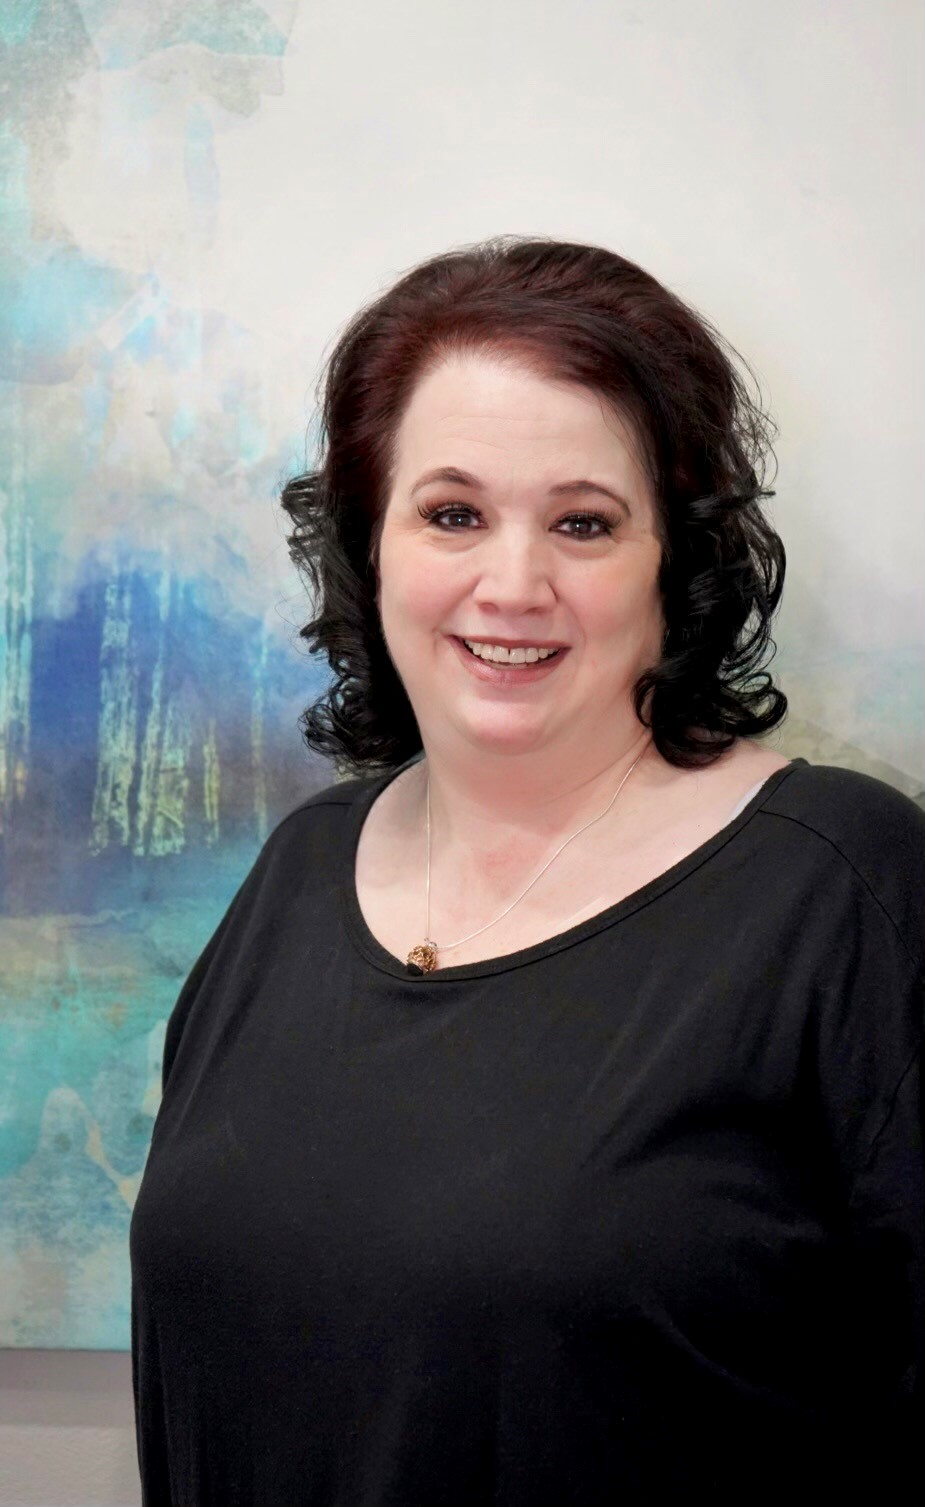 Cheryl, employee at Lauren Standefer & Associates DDS in McKinney, Texas